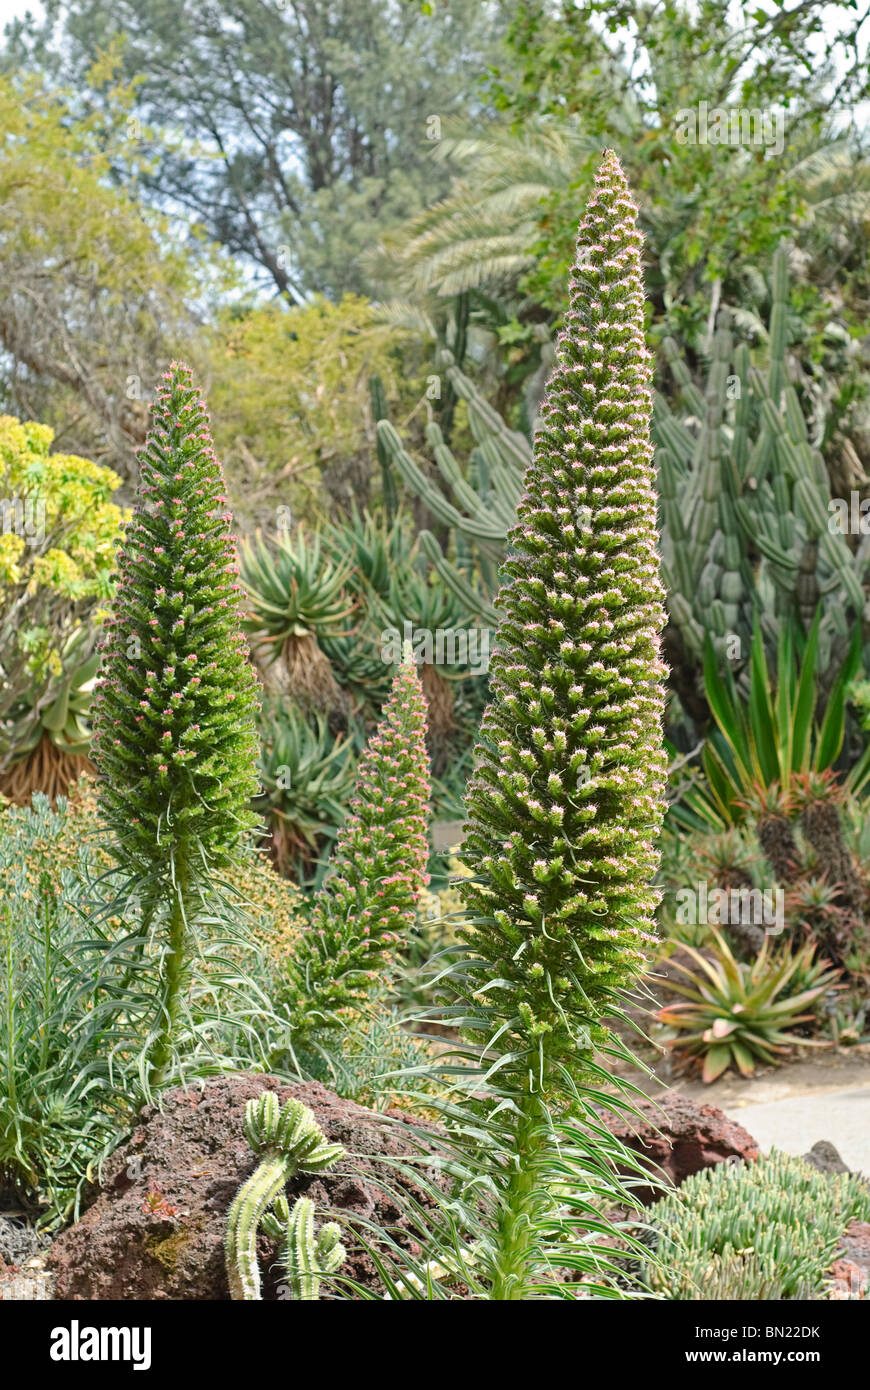 The Tower of Jewels plant, Echium wildpretii is an herbaceous biennial plant that is endemic to the Canary Islands. - Stock Image